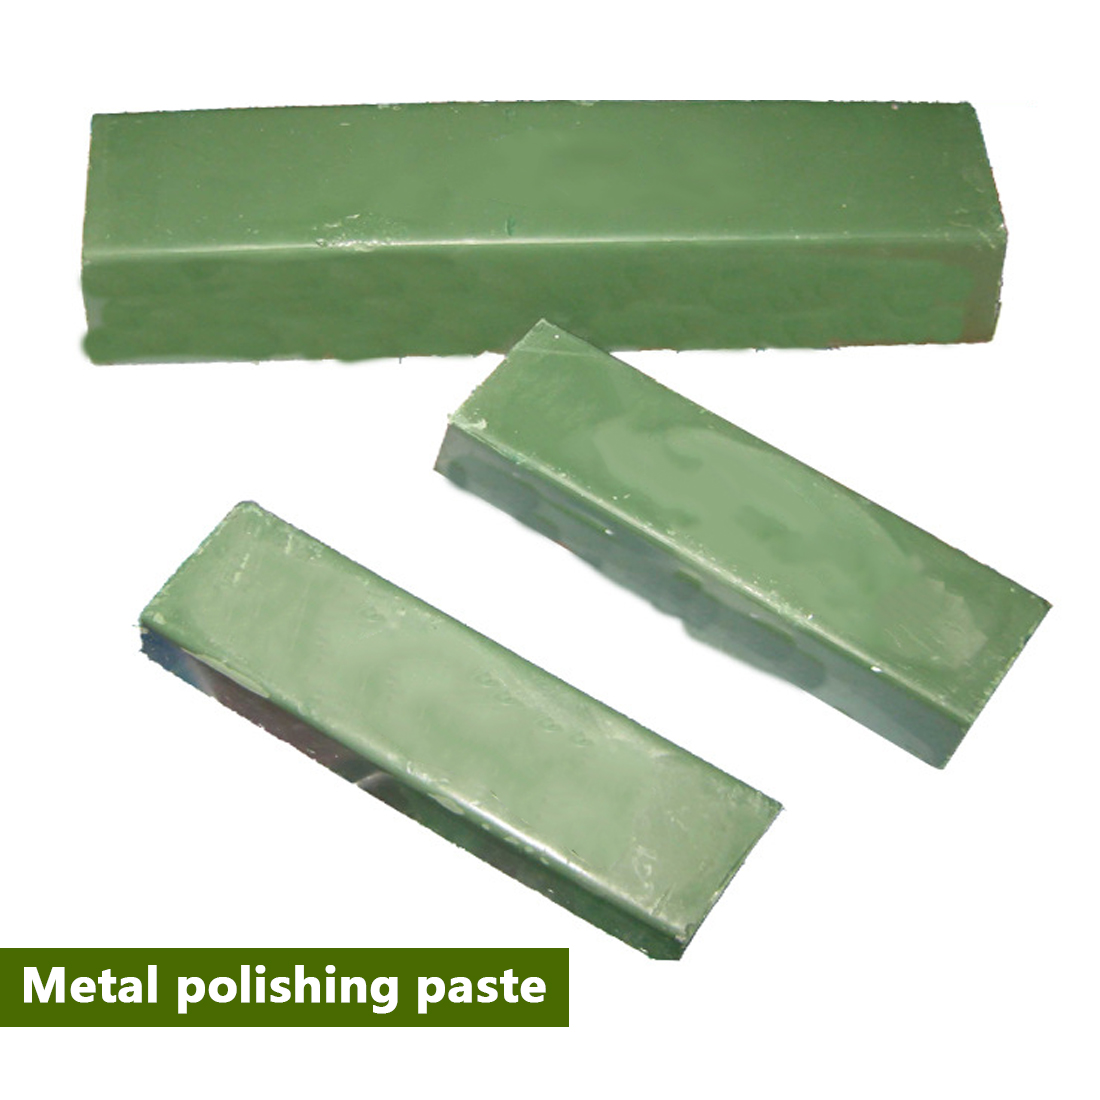 Paste Polishing Sharpener Polishing Wax Paste For Stainless Steel ,Copper Products, Aluminum Products,Chromium Oxide Abrasive